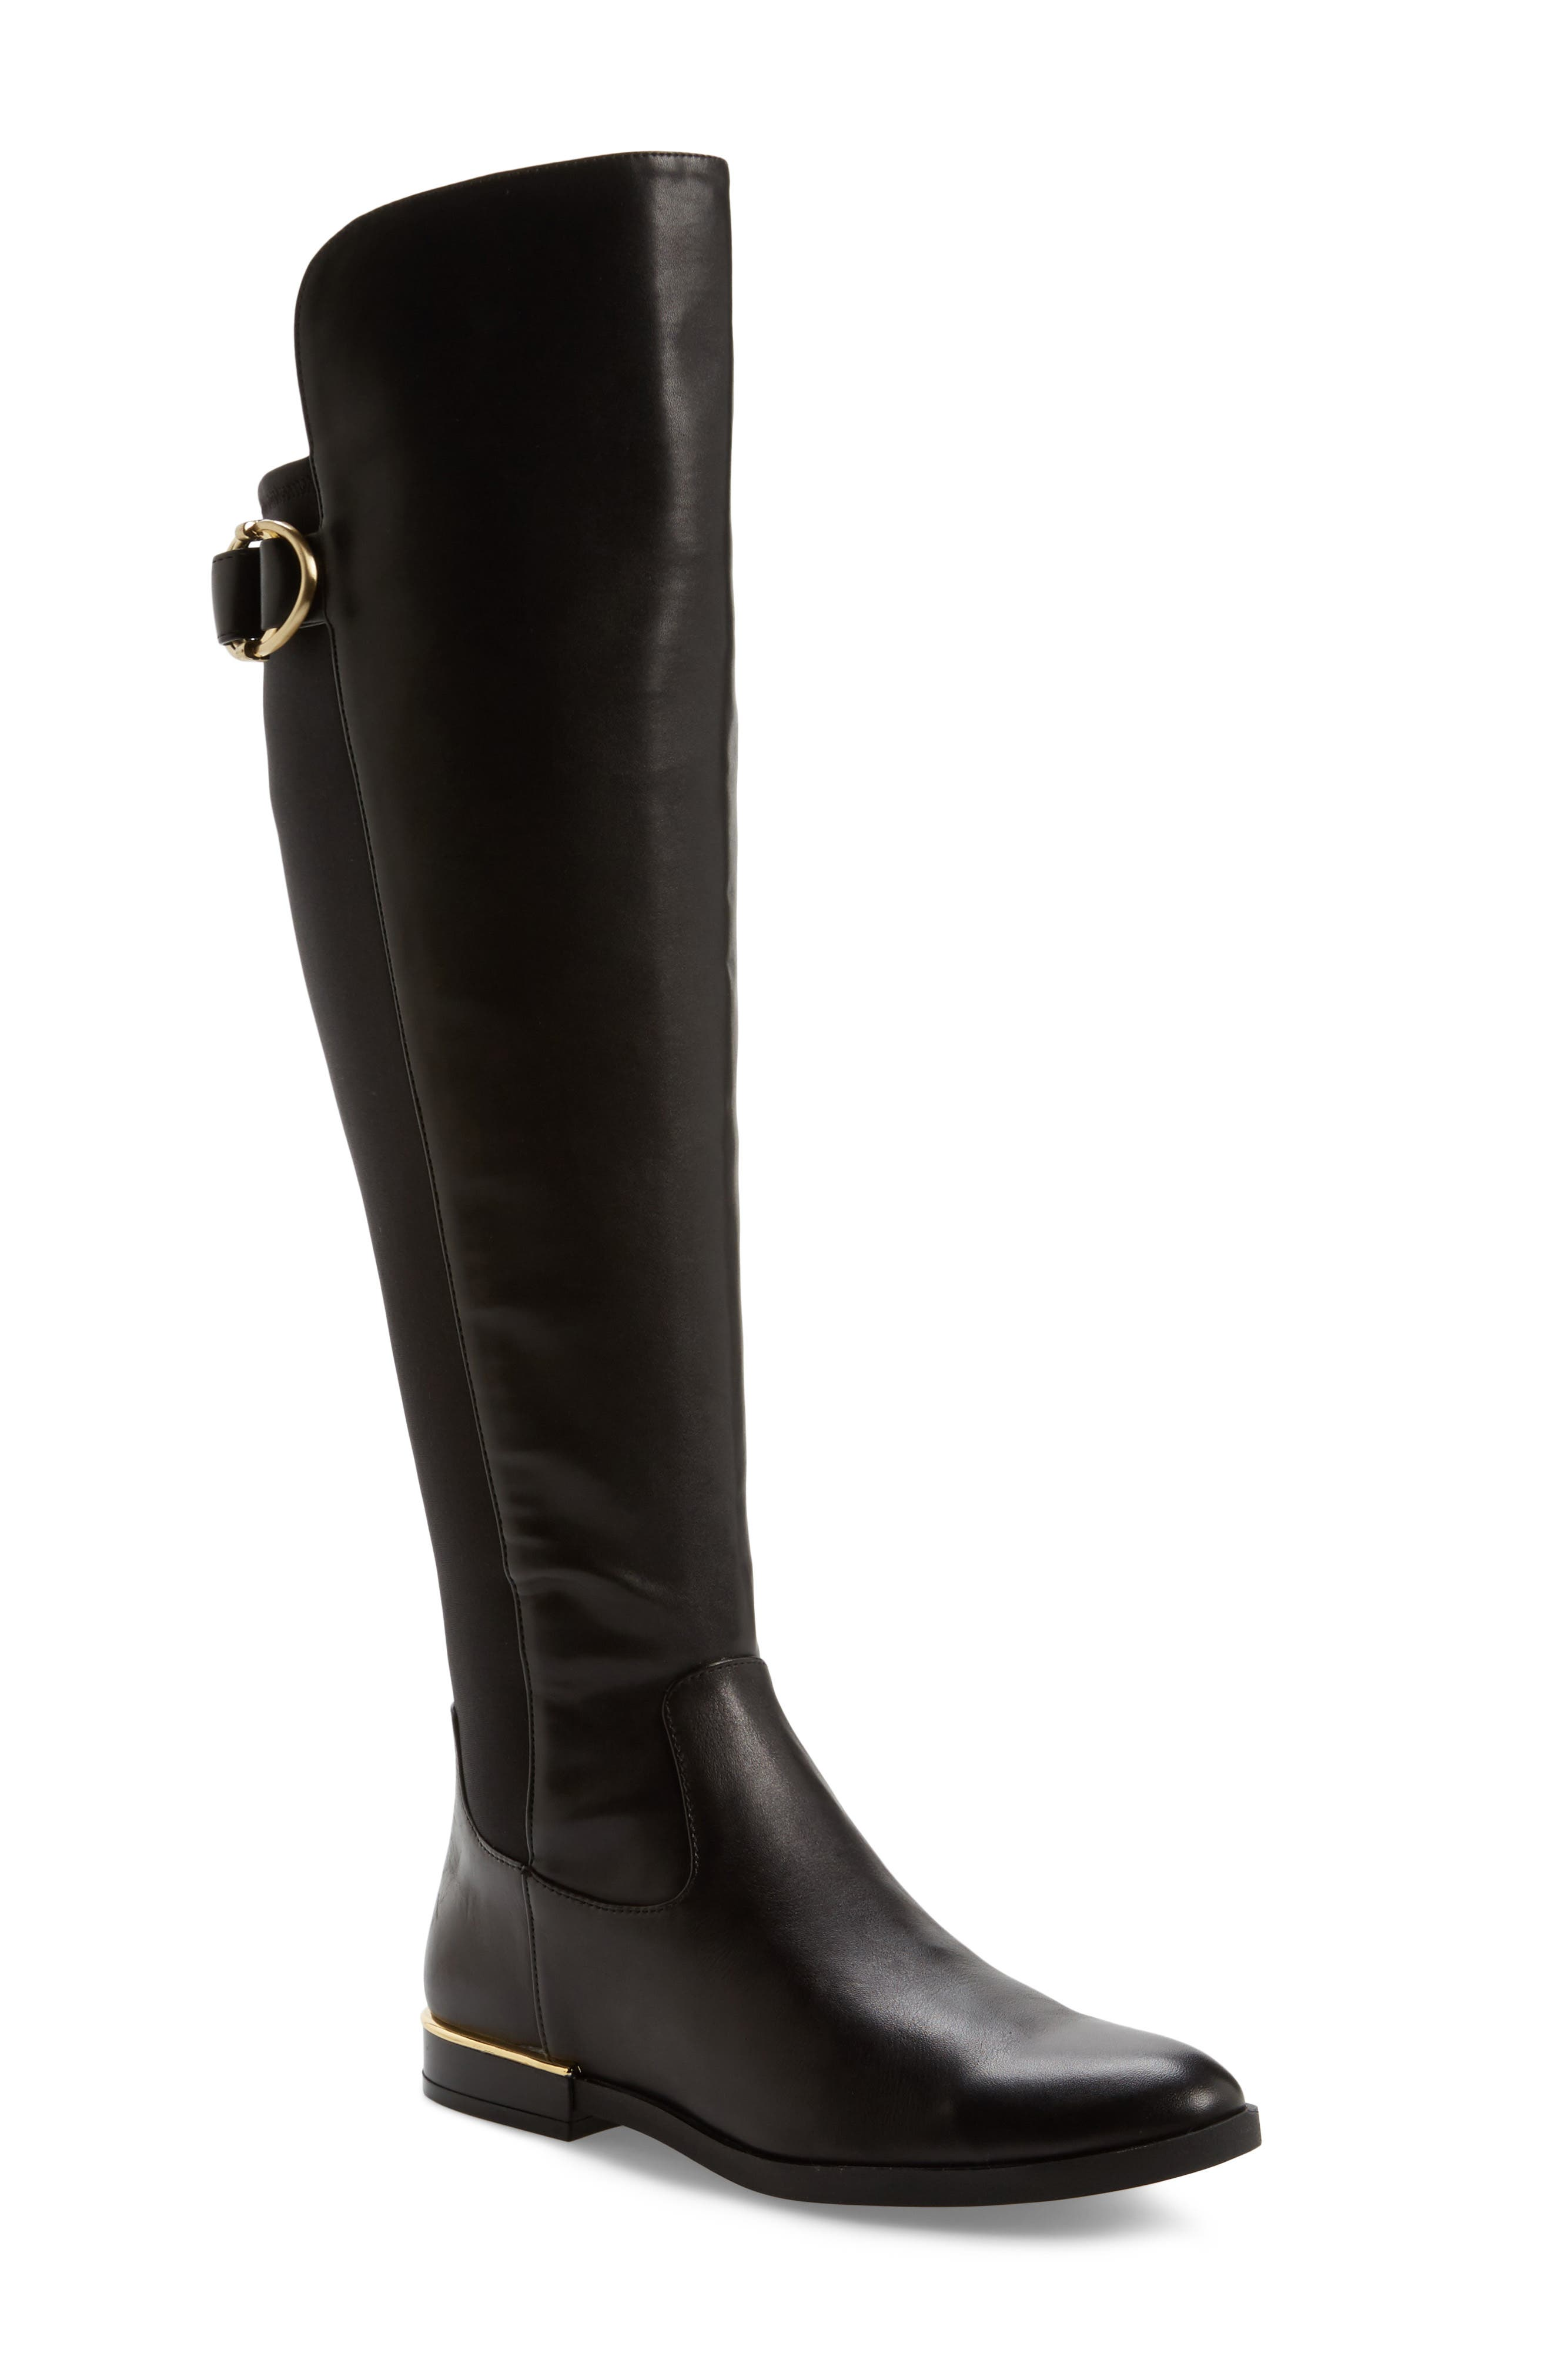 Priscila Over the Knee Boot,                             Main thumbnail 1, color,                             Black Leather